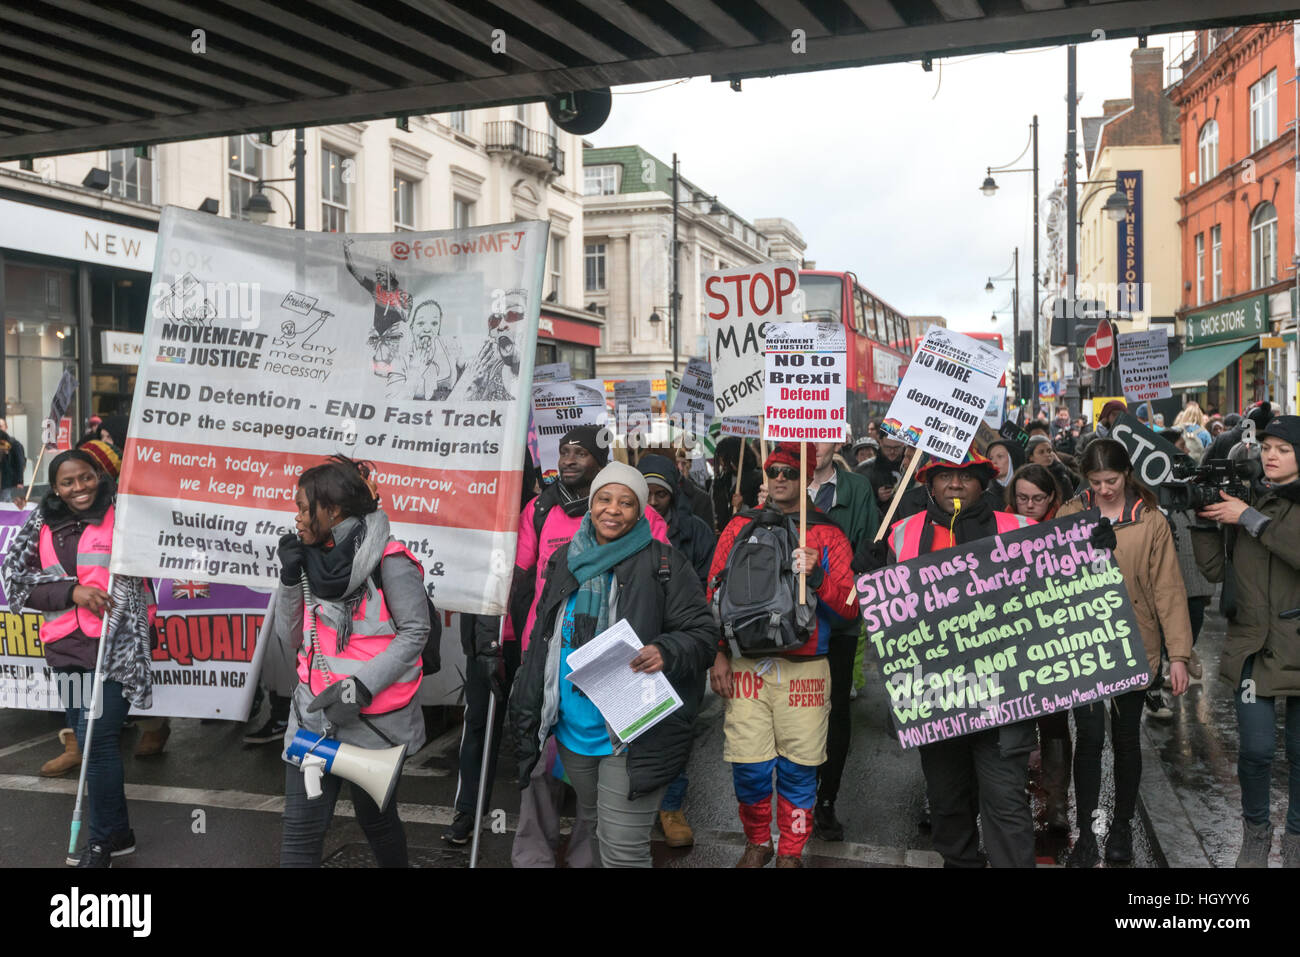 London, UK. 14th January 2017. Movement for Justice lead a march through Brixton communities building the fight - Stock Image